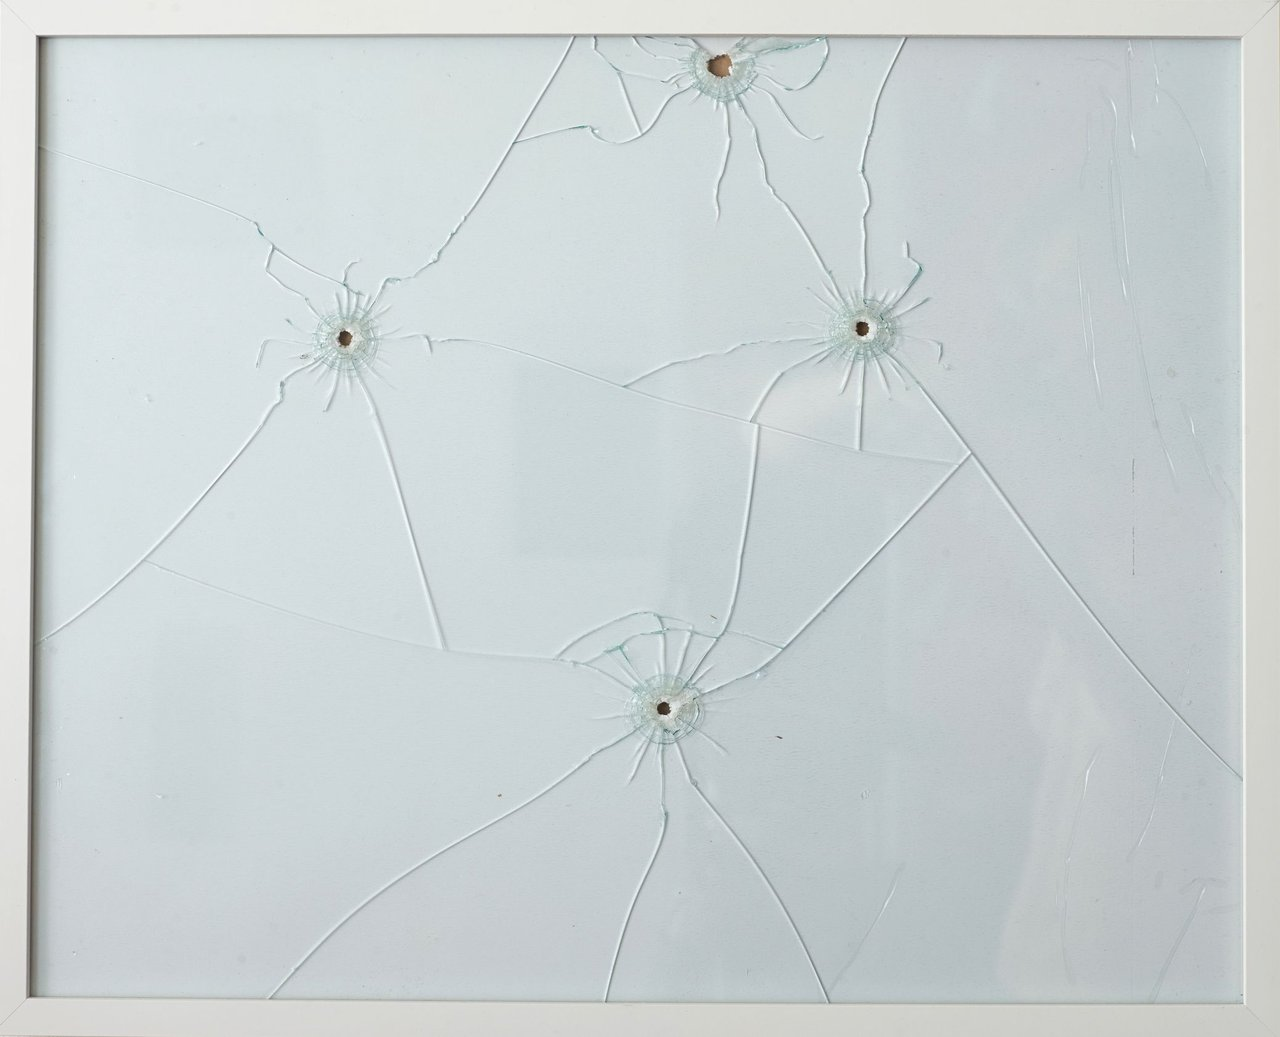 Almut Linde: Dirty Minimal #33.2.10-12 — Bullet Action Painting/Machine Gun